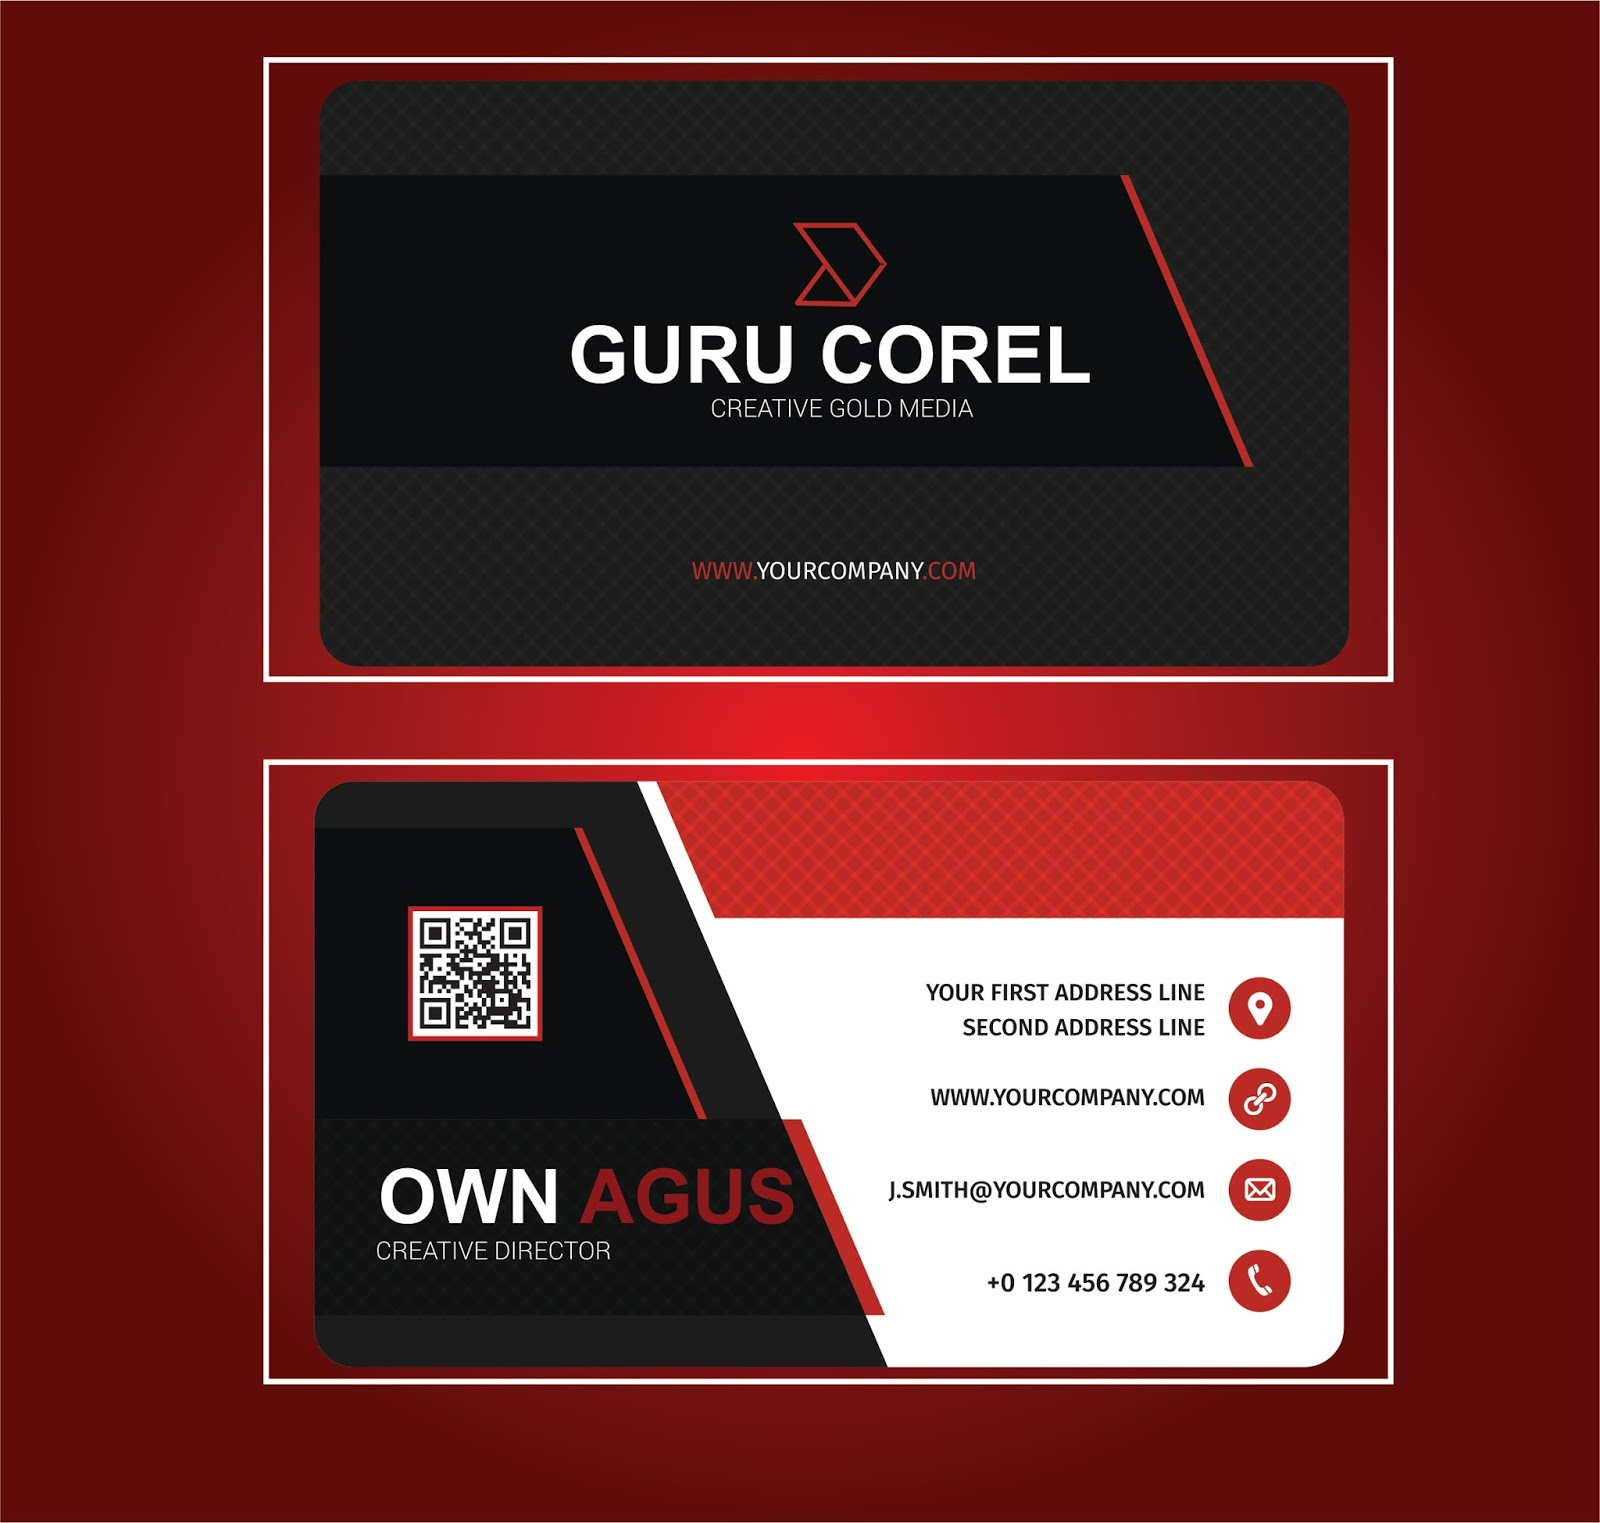 Best id card template coreldraw free vector download for coreldraw business cards templates id card free vector download 24 coreldraw business cards templates card template vol 21 cdr format corelpro reheart Choice Image